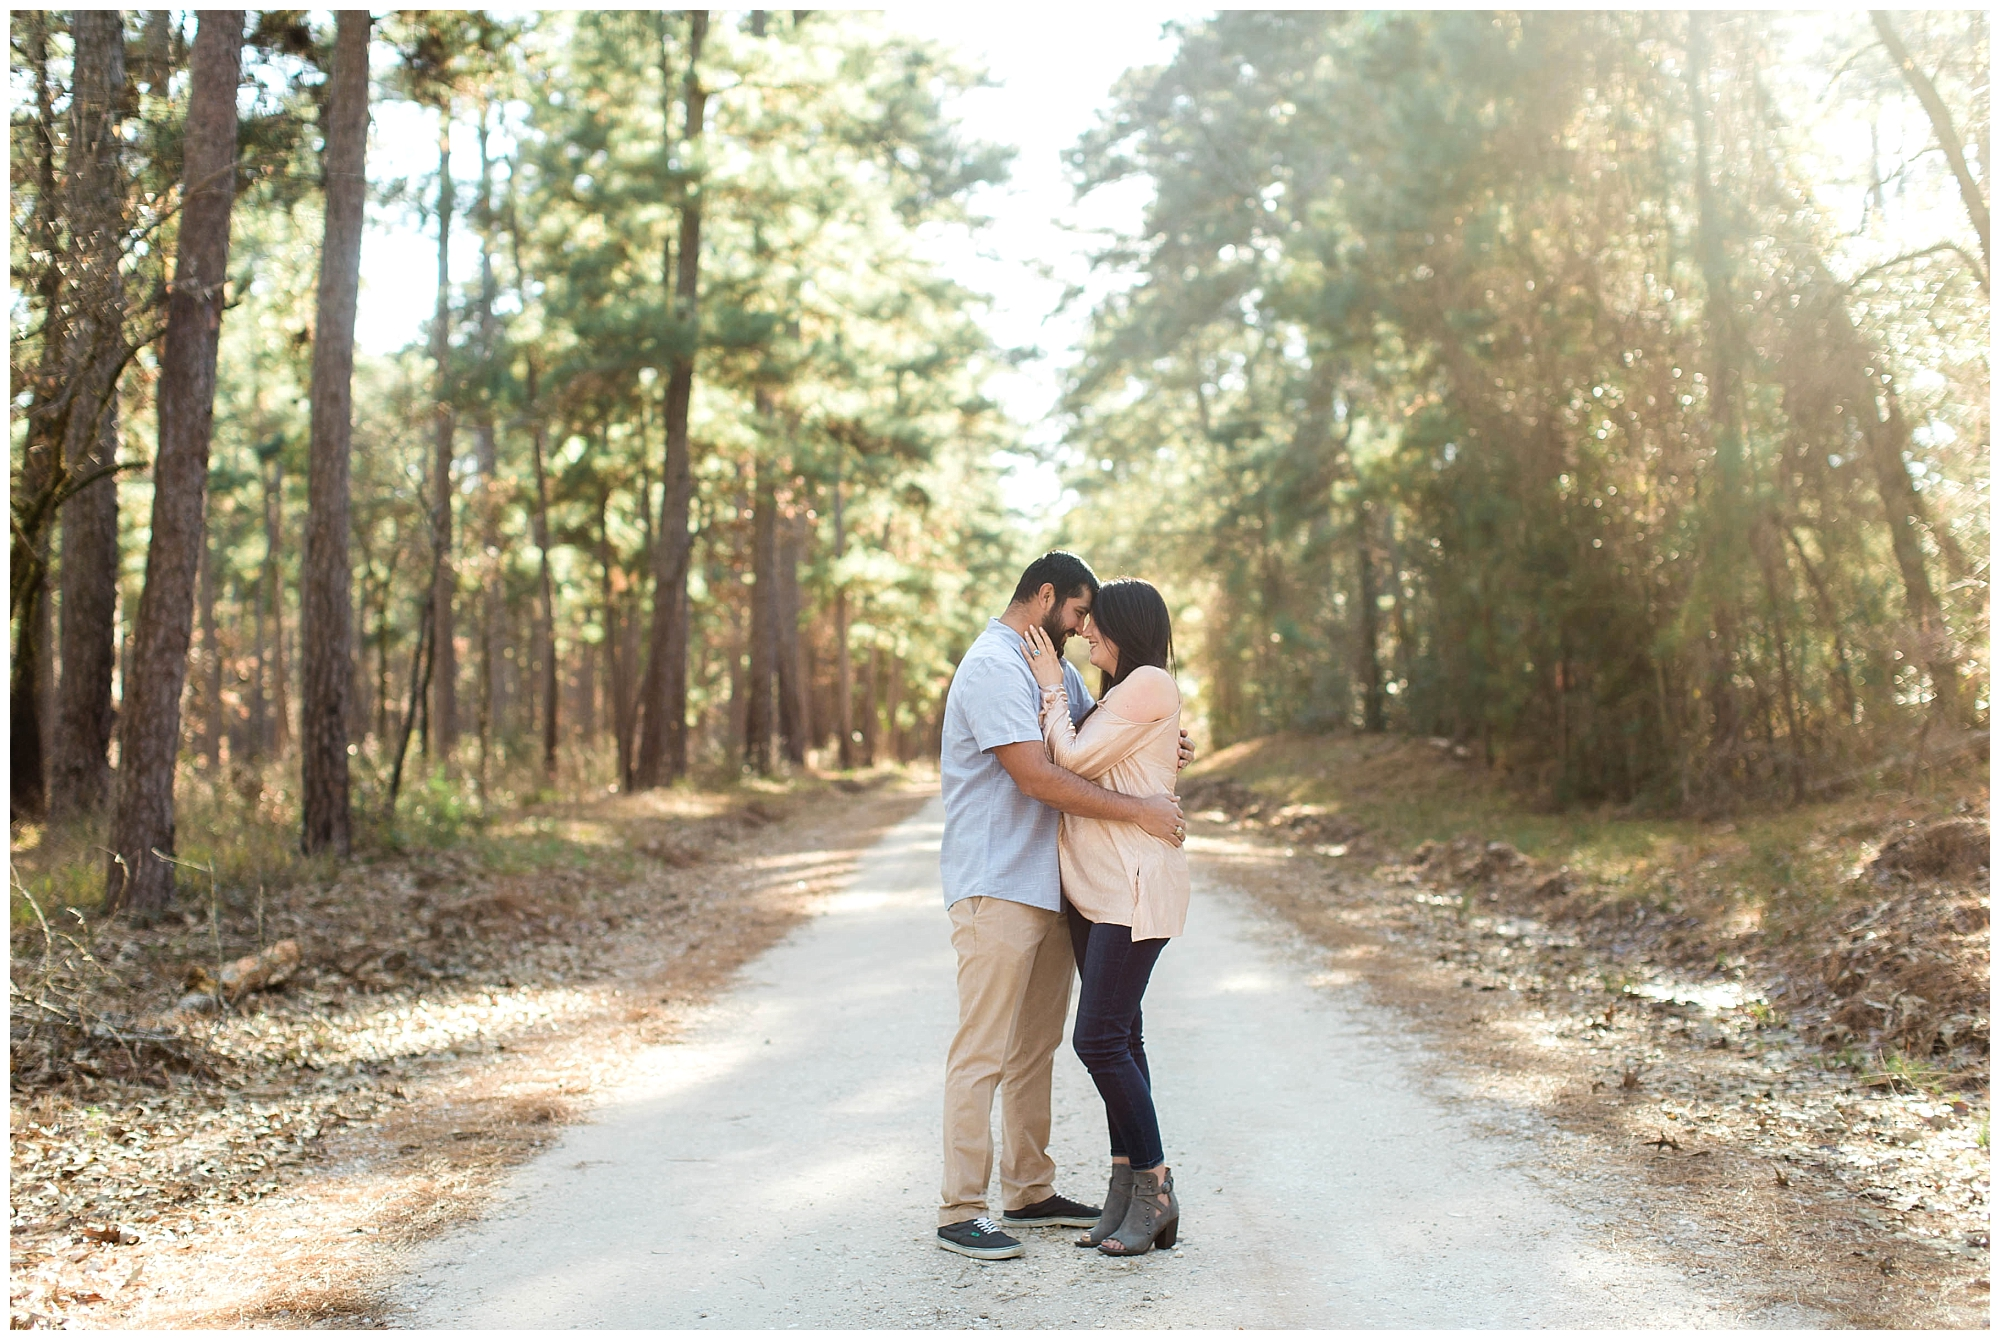 Sam_Houston_National_Forest_Engagement_Session_Kristina_Ross_Photography_0001.jpg